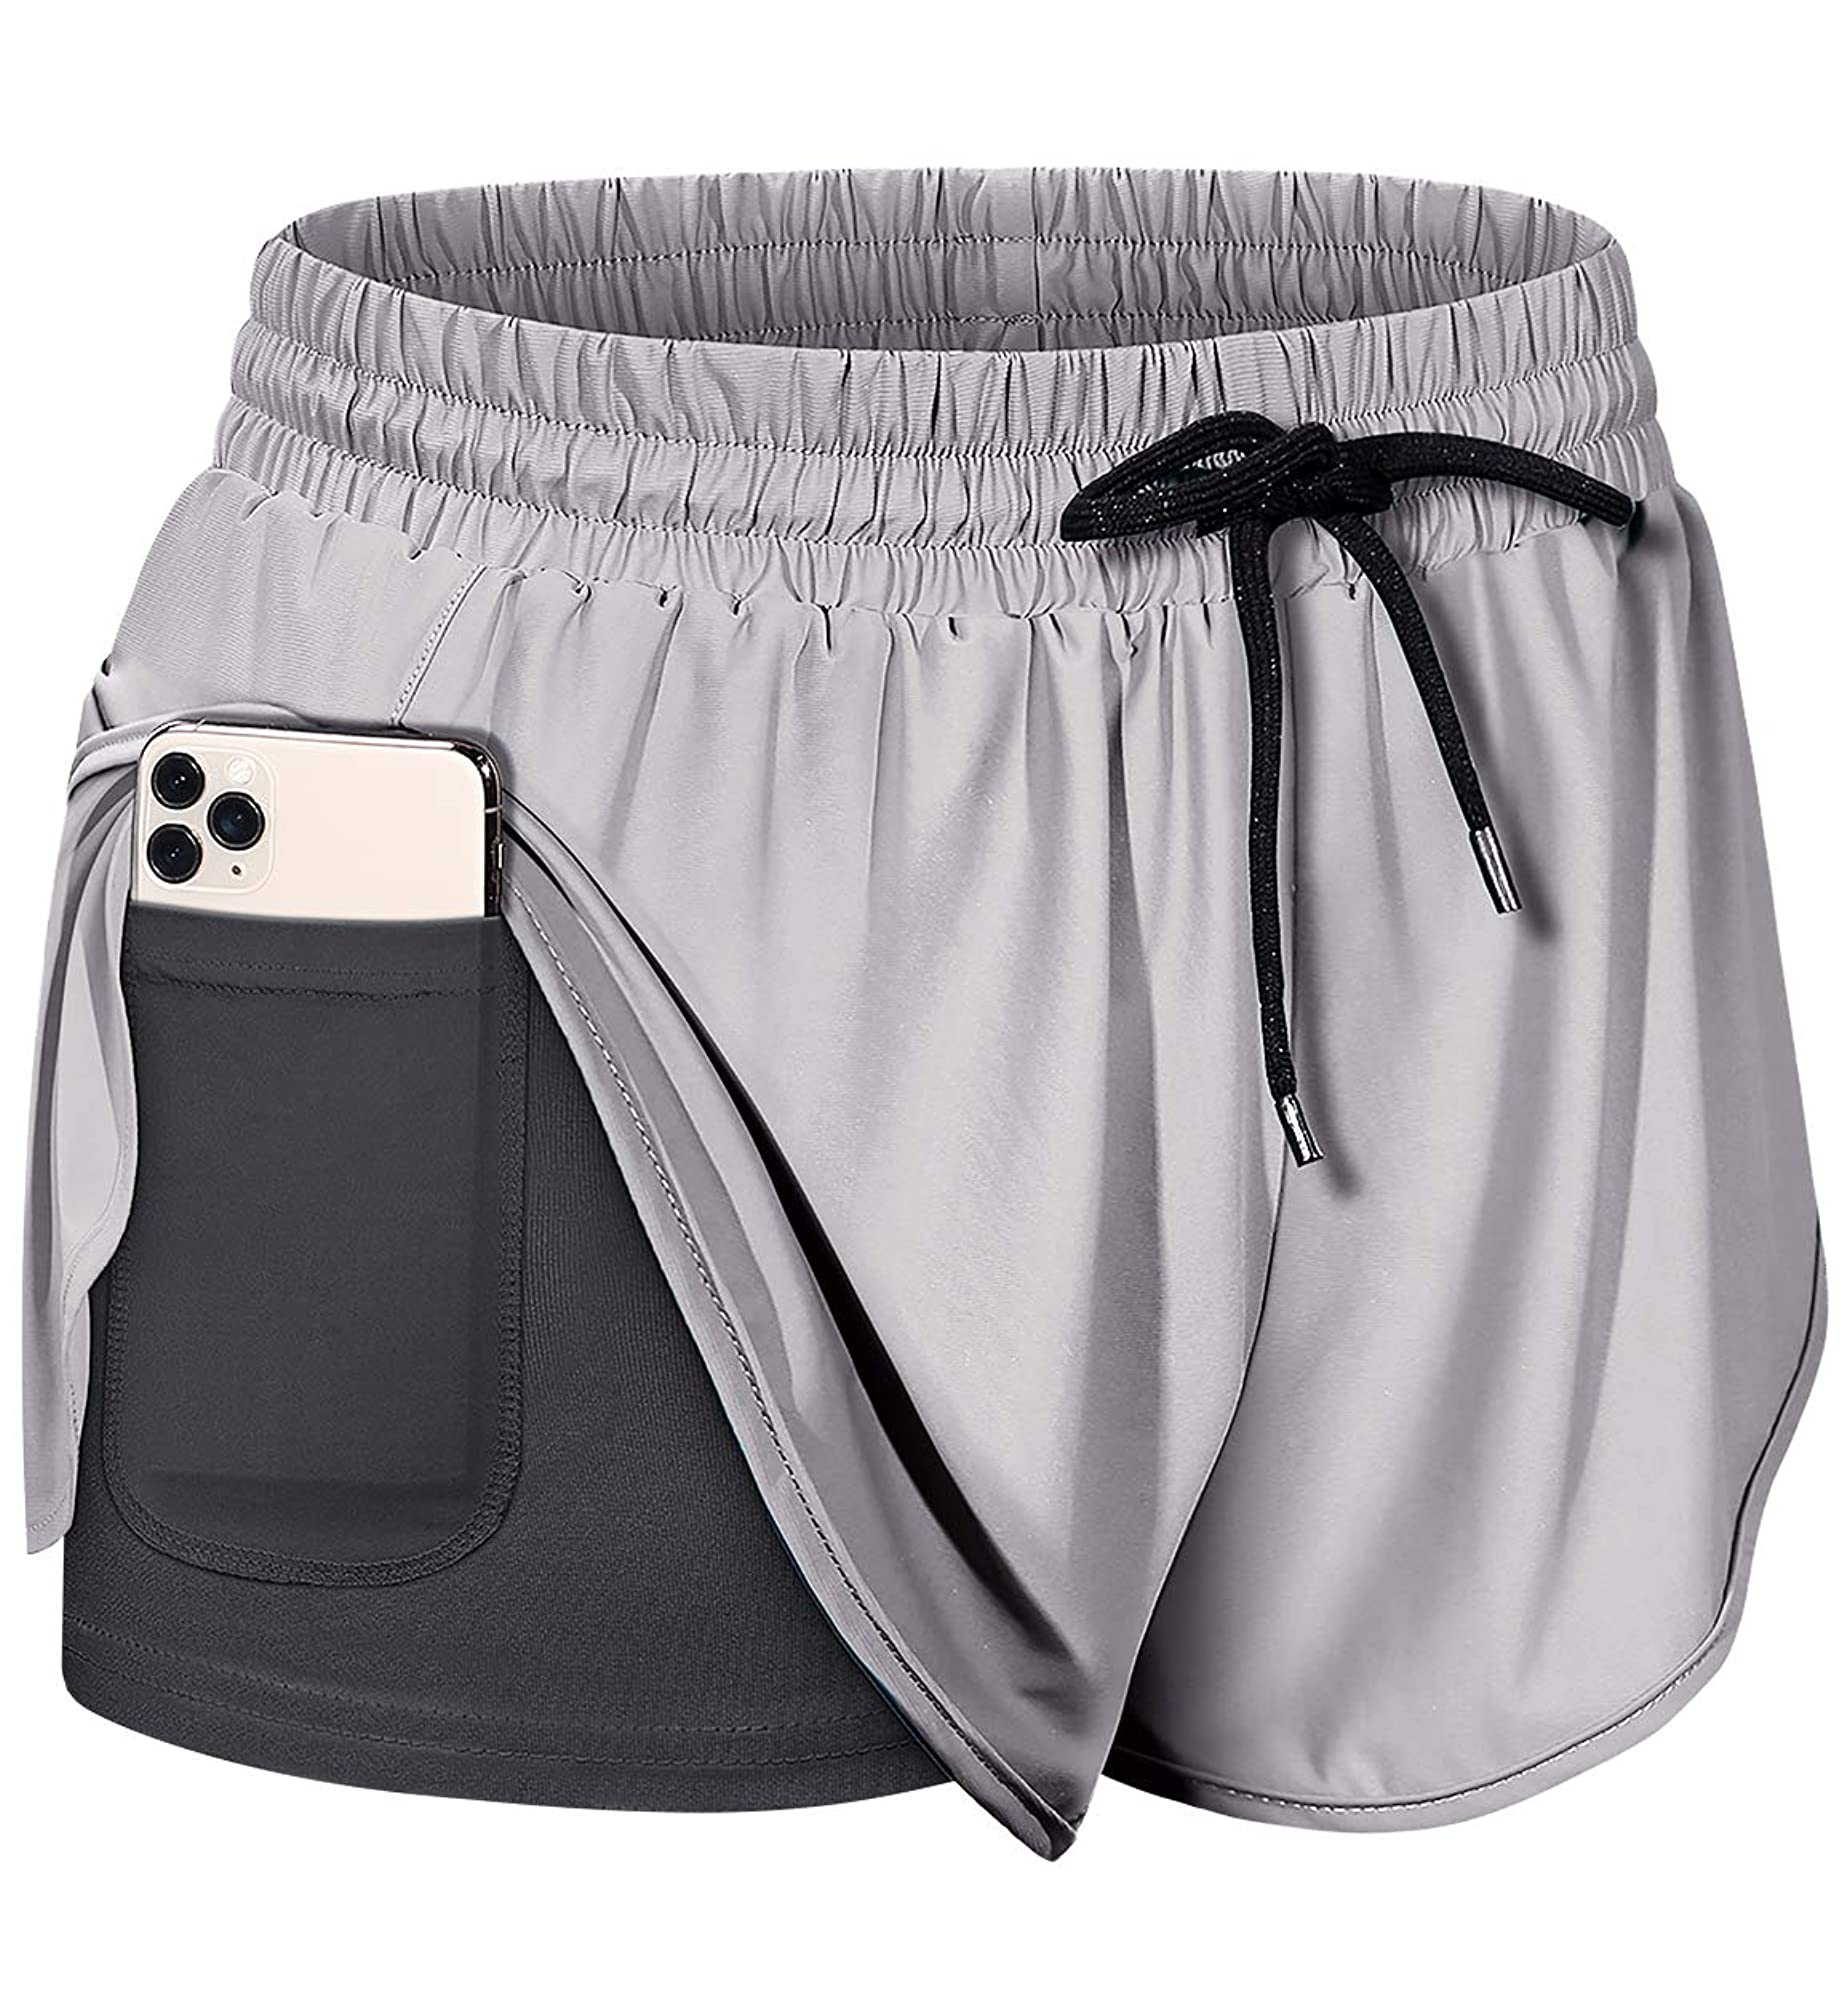 Drawstring Waist Athletic Running Shorts